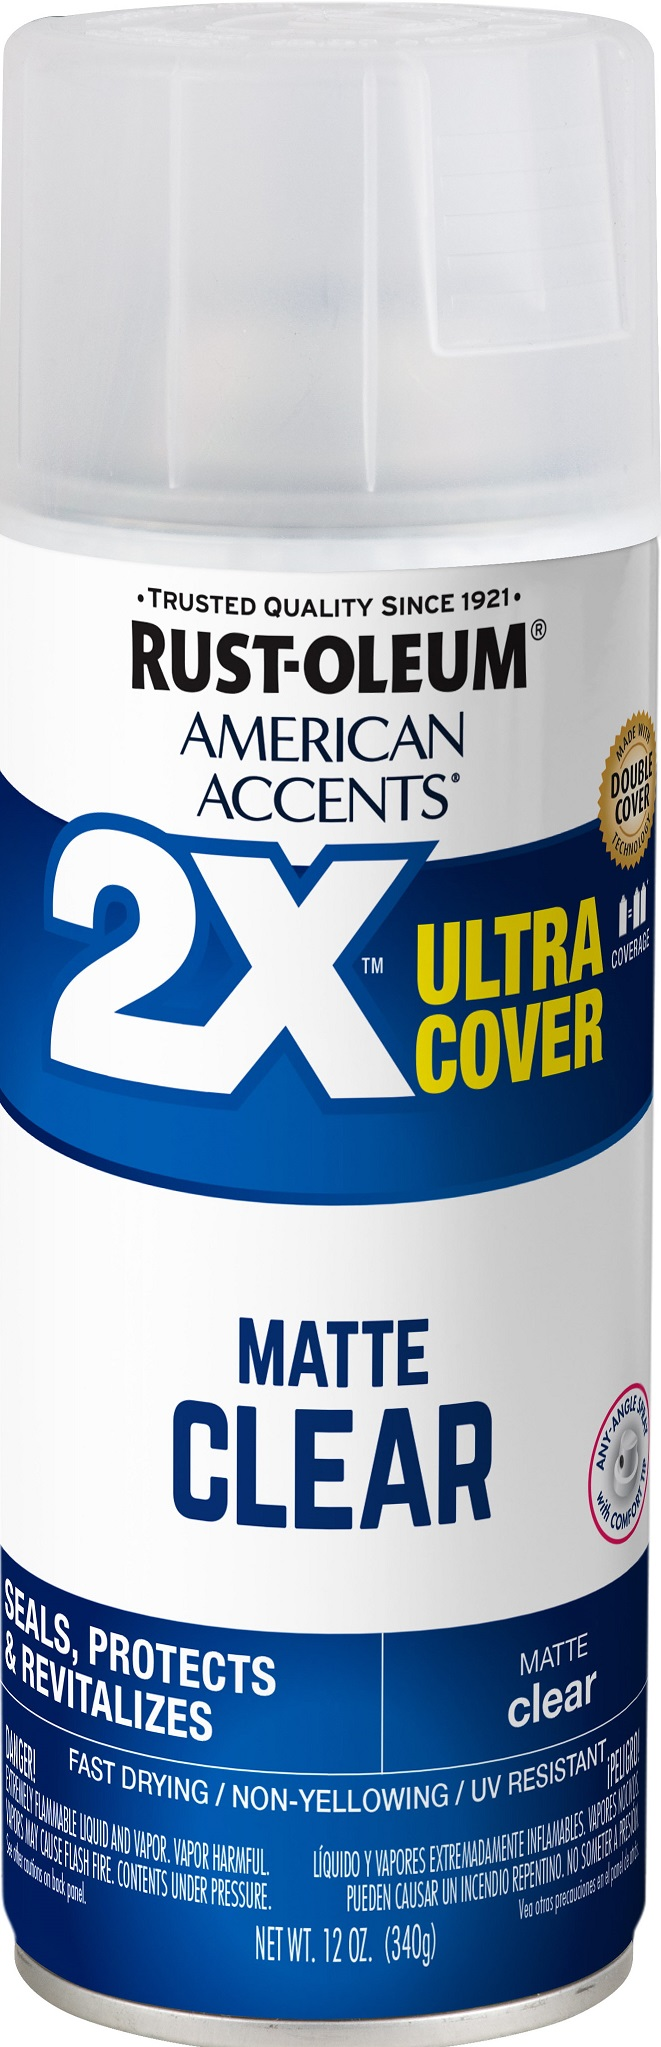 (3 Pack) Rust-Oleum American Accents Ultra Cover 2X Matte Clear Spray Paint and Primer in 1, 12 oz